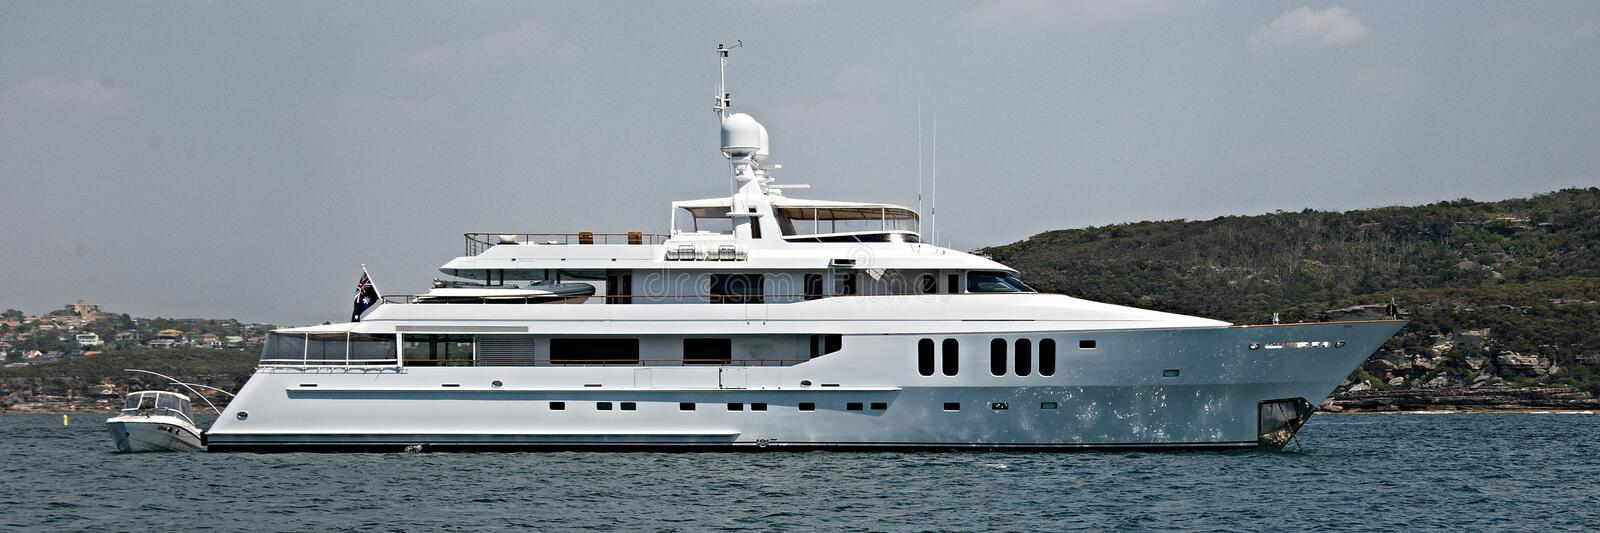 A 90 ton plus, luxury cruising motor Super Yacht at anchor in Sy stock photography